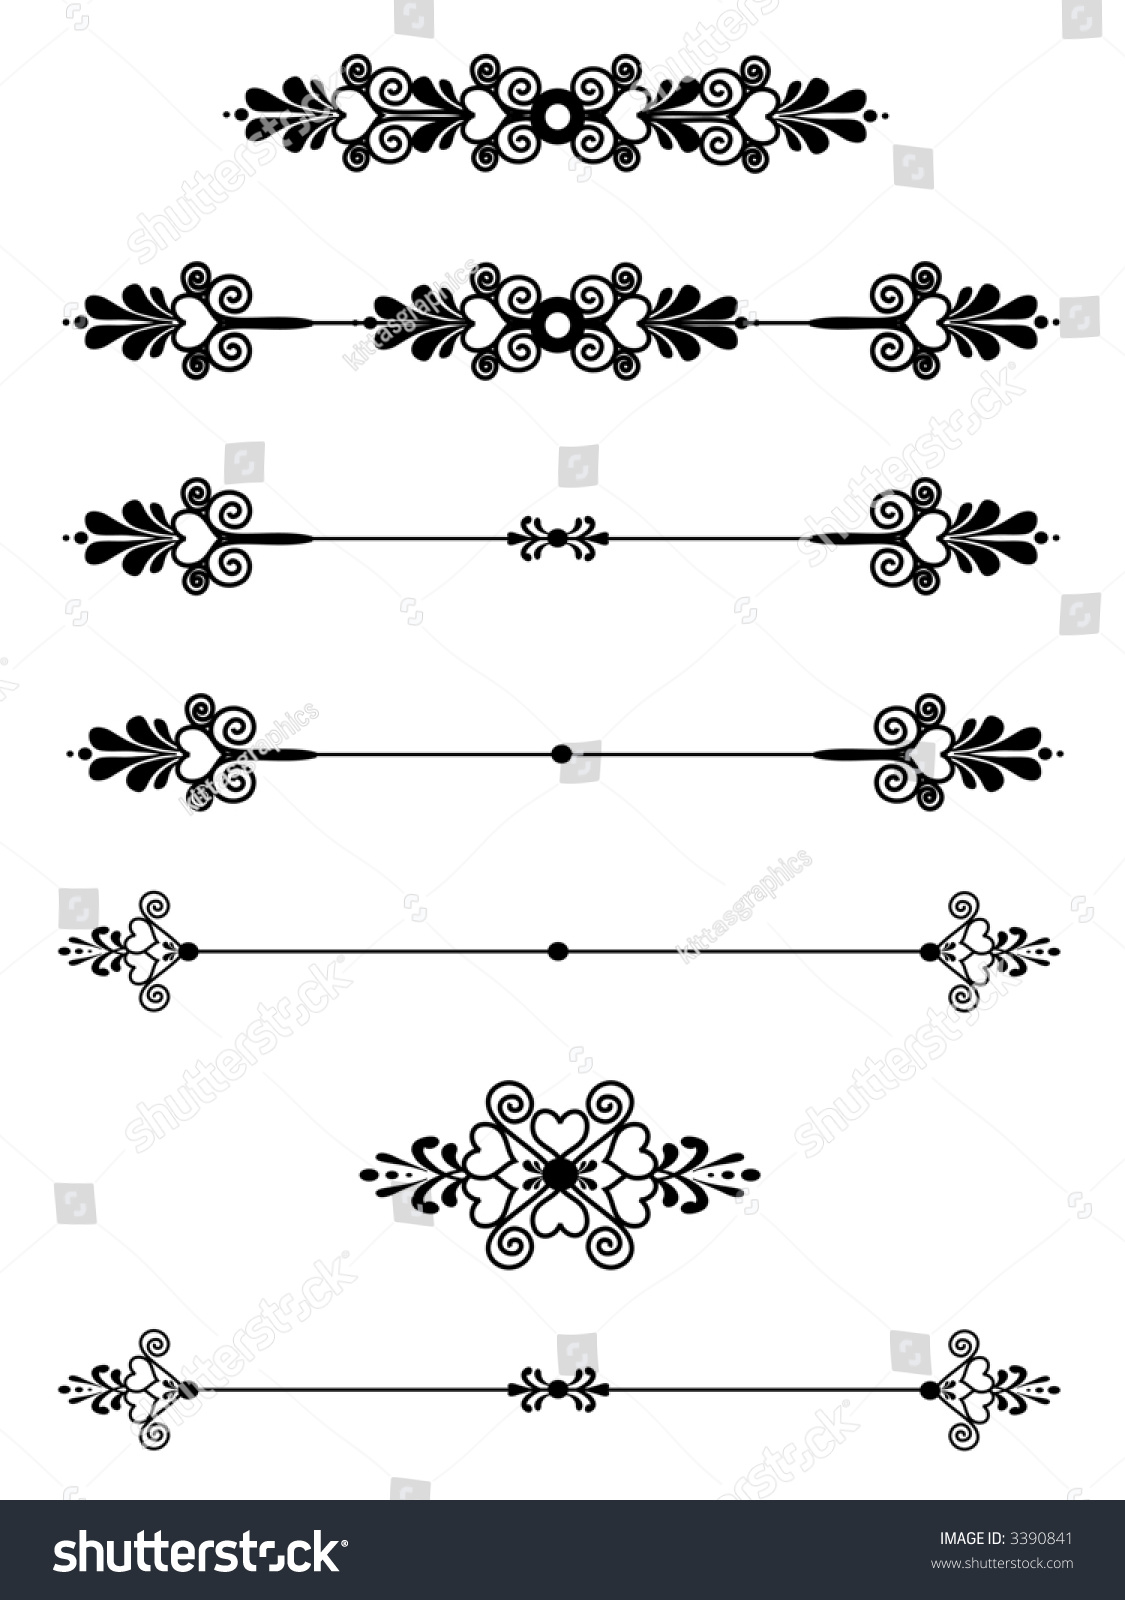 Basic Line Designs : Decorative lines with hearts imgkid the image